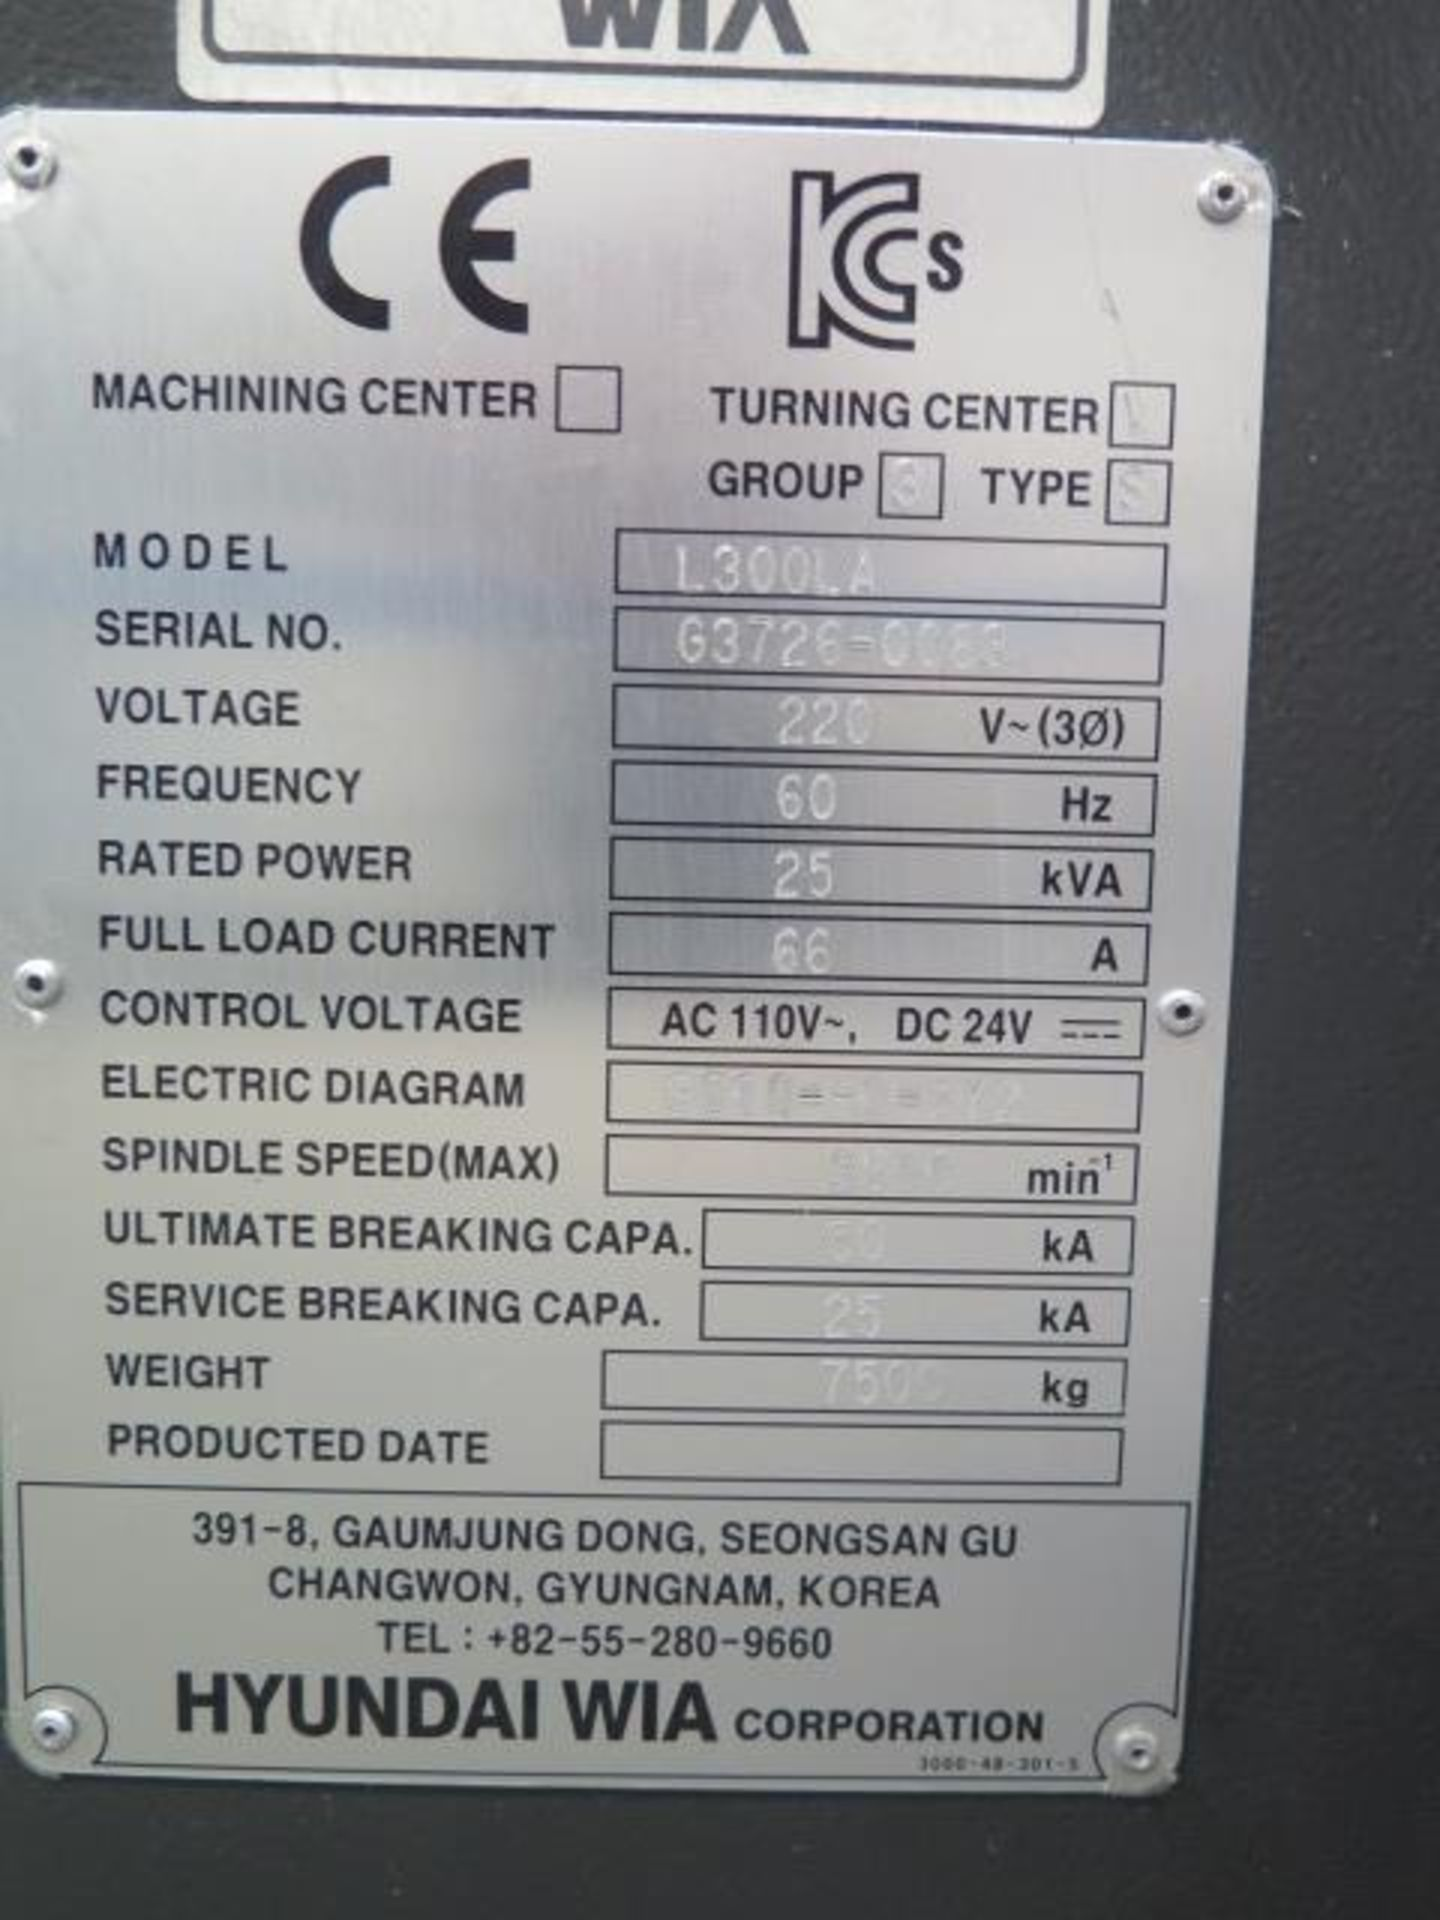 2016 Hyundai WIA L300LA CNC Turning Center s/n G3726-0083 w/ Fanuc i-Series Controls, SOLD AS IS - Image 19 of 20